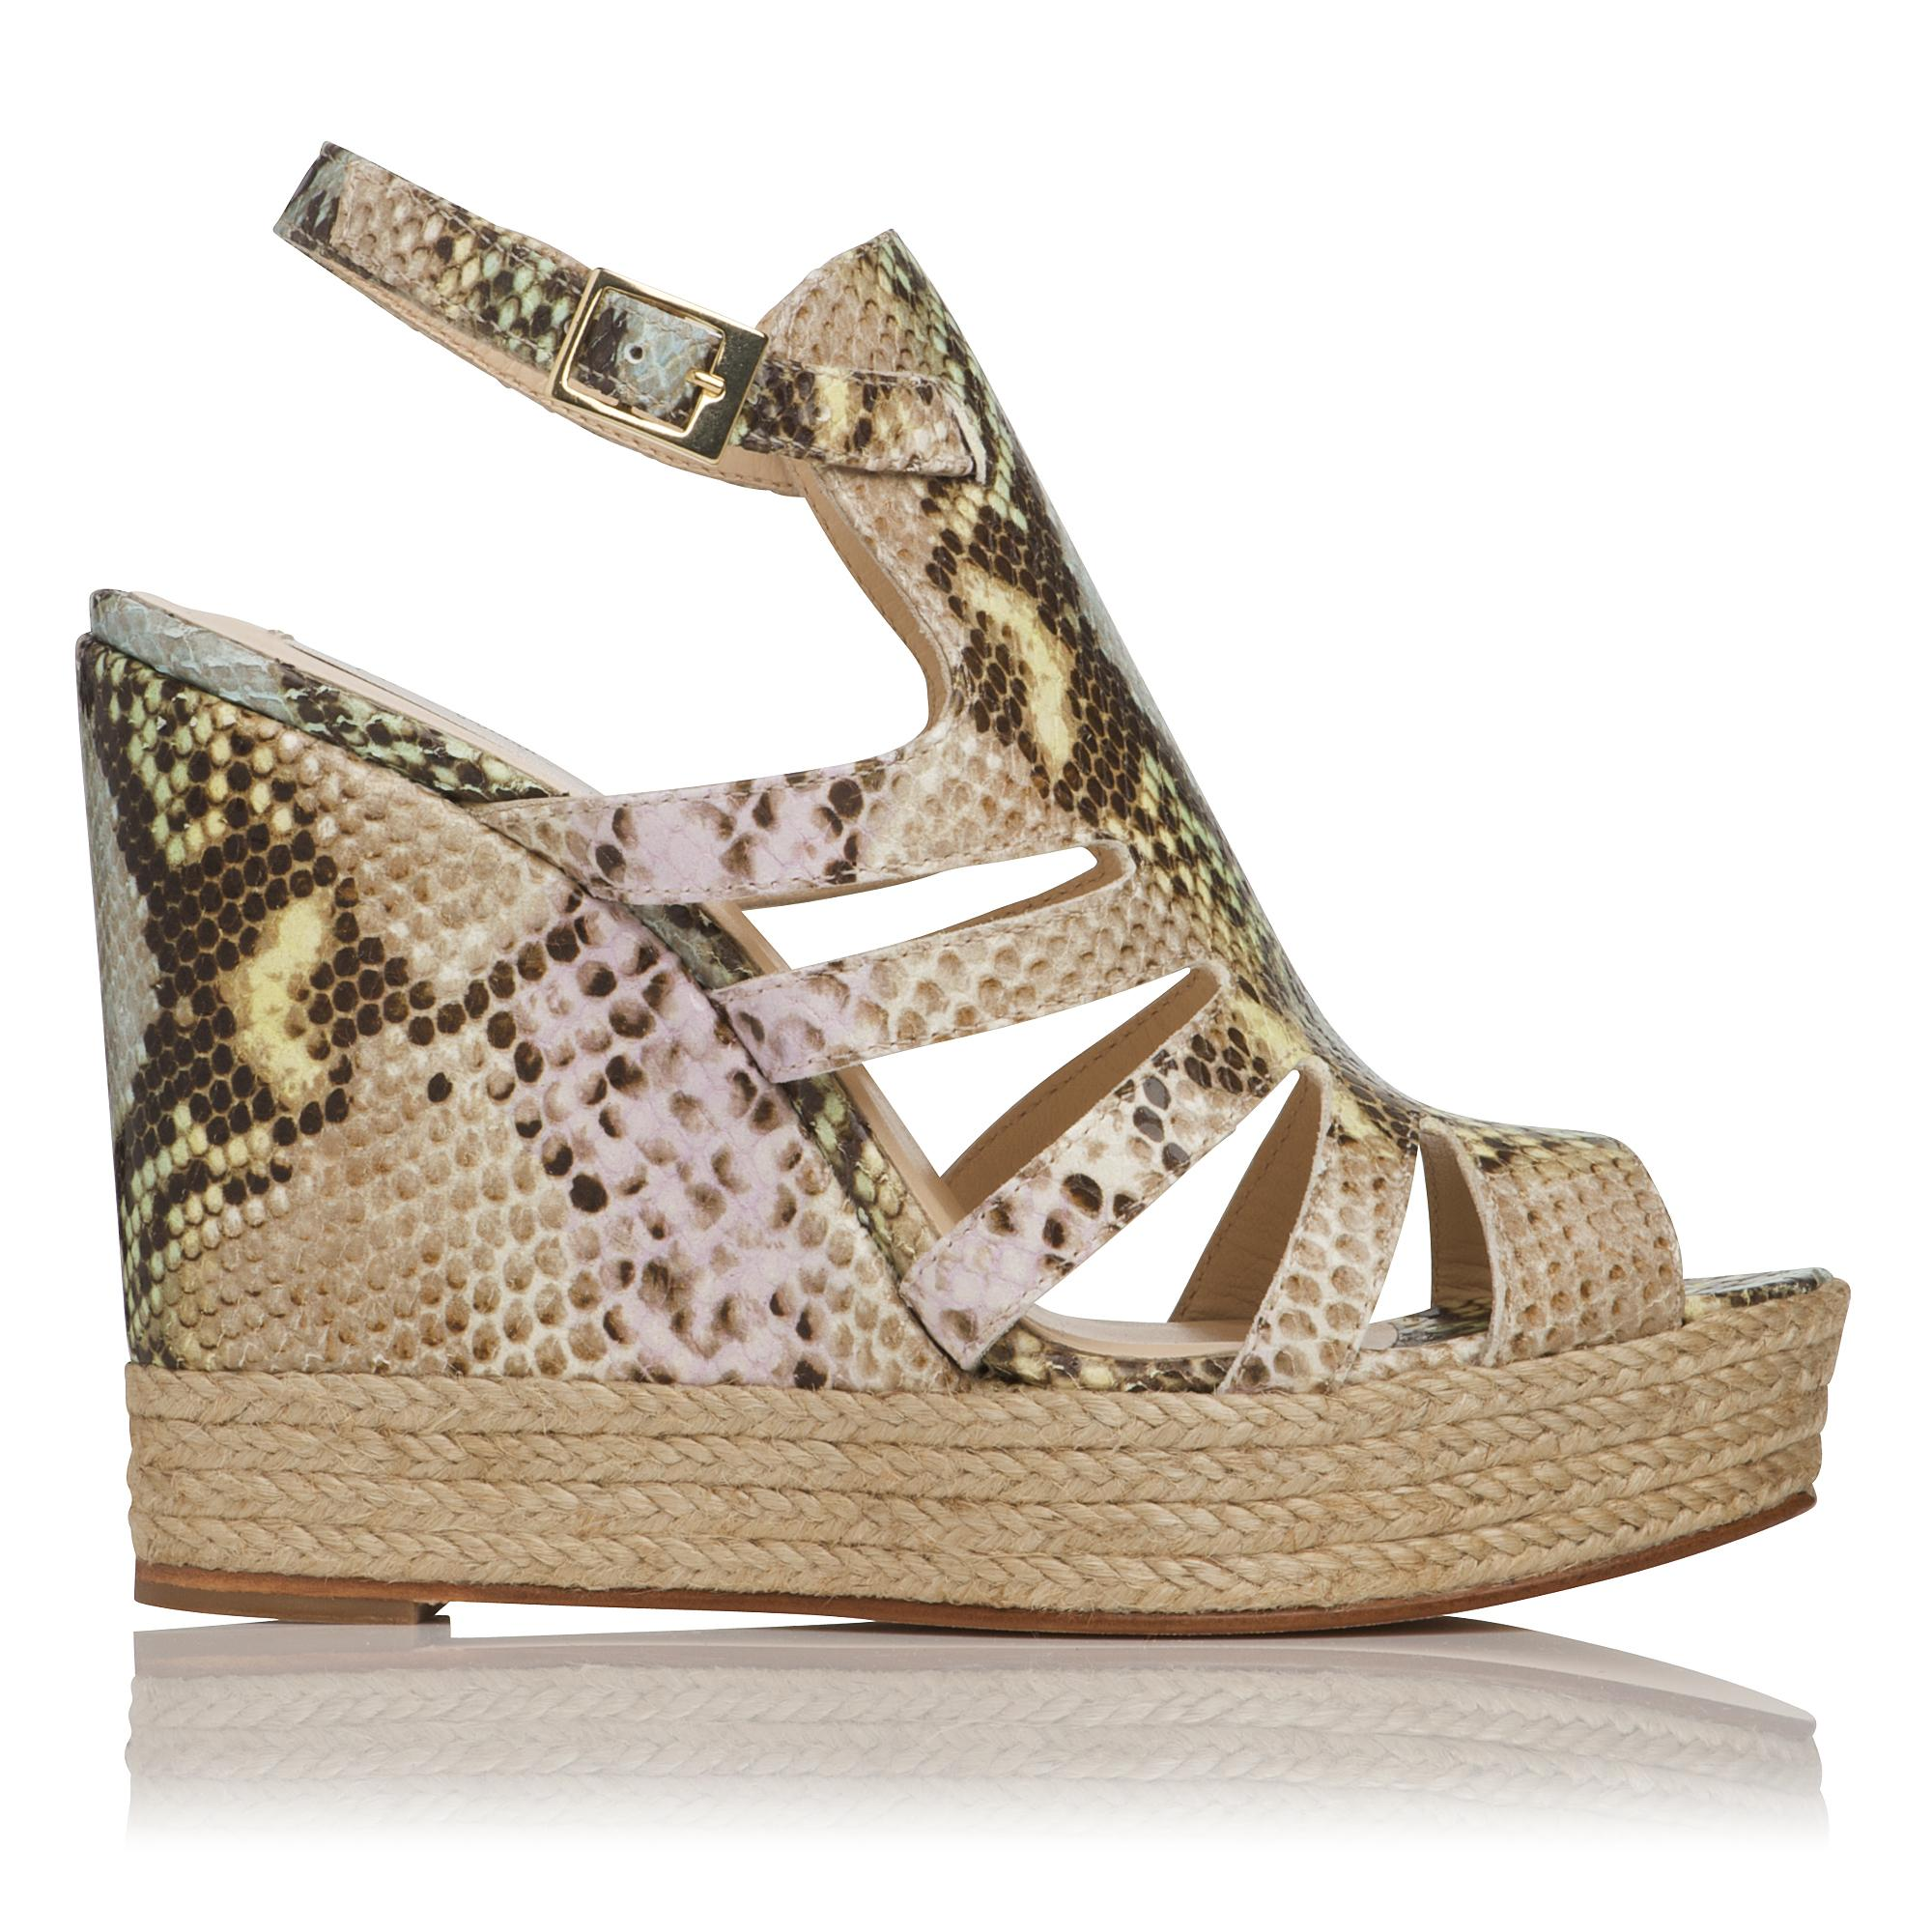 7efe5a17152c Hawaii Printed Leather Gladiator Wedge